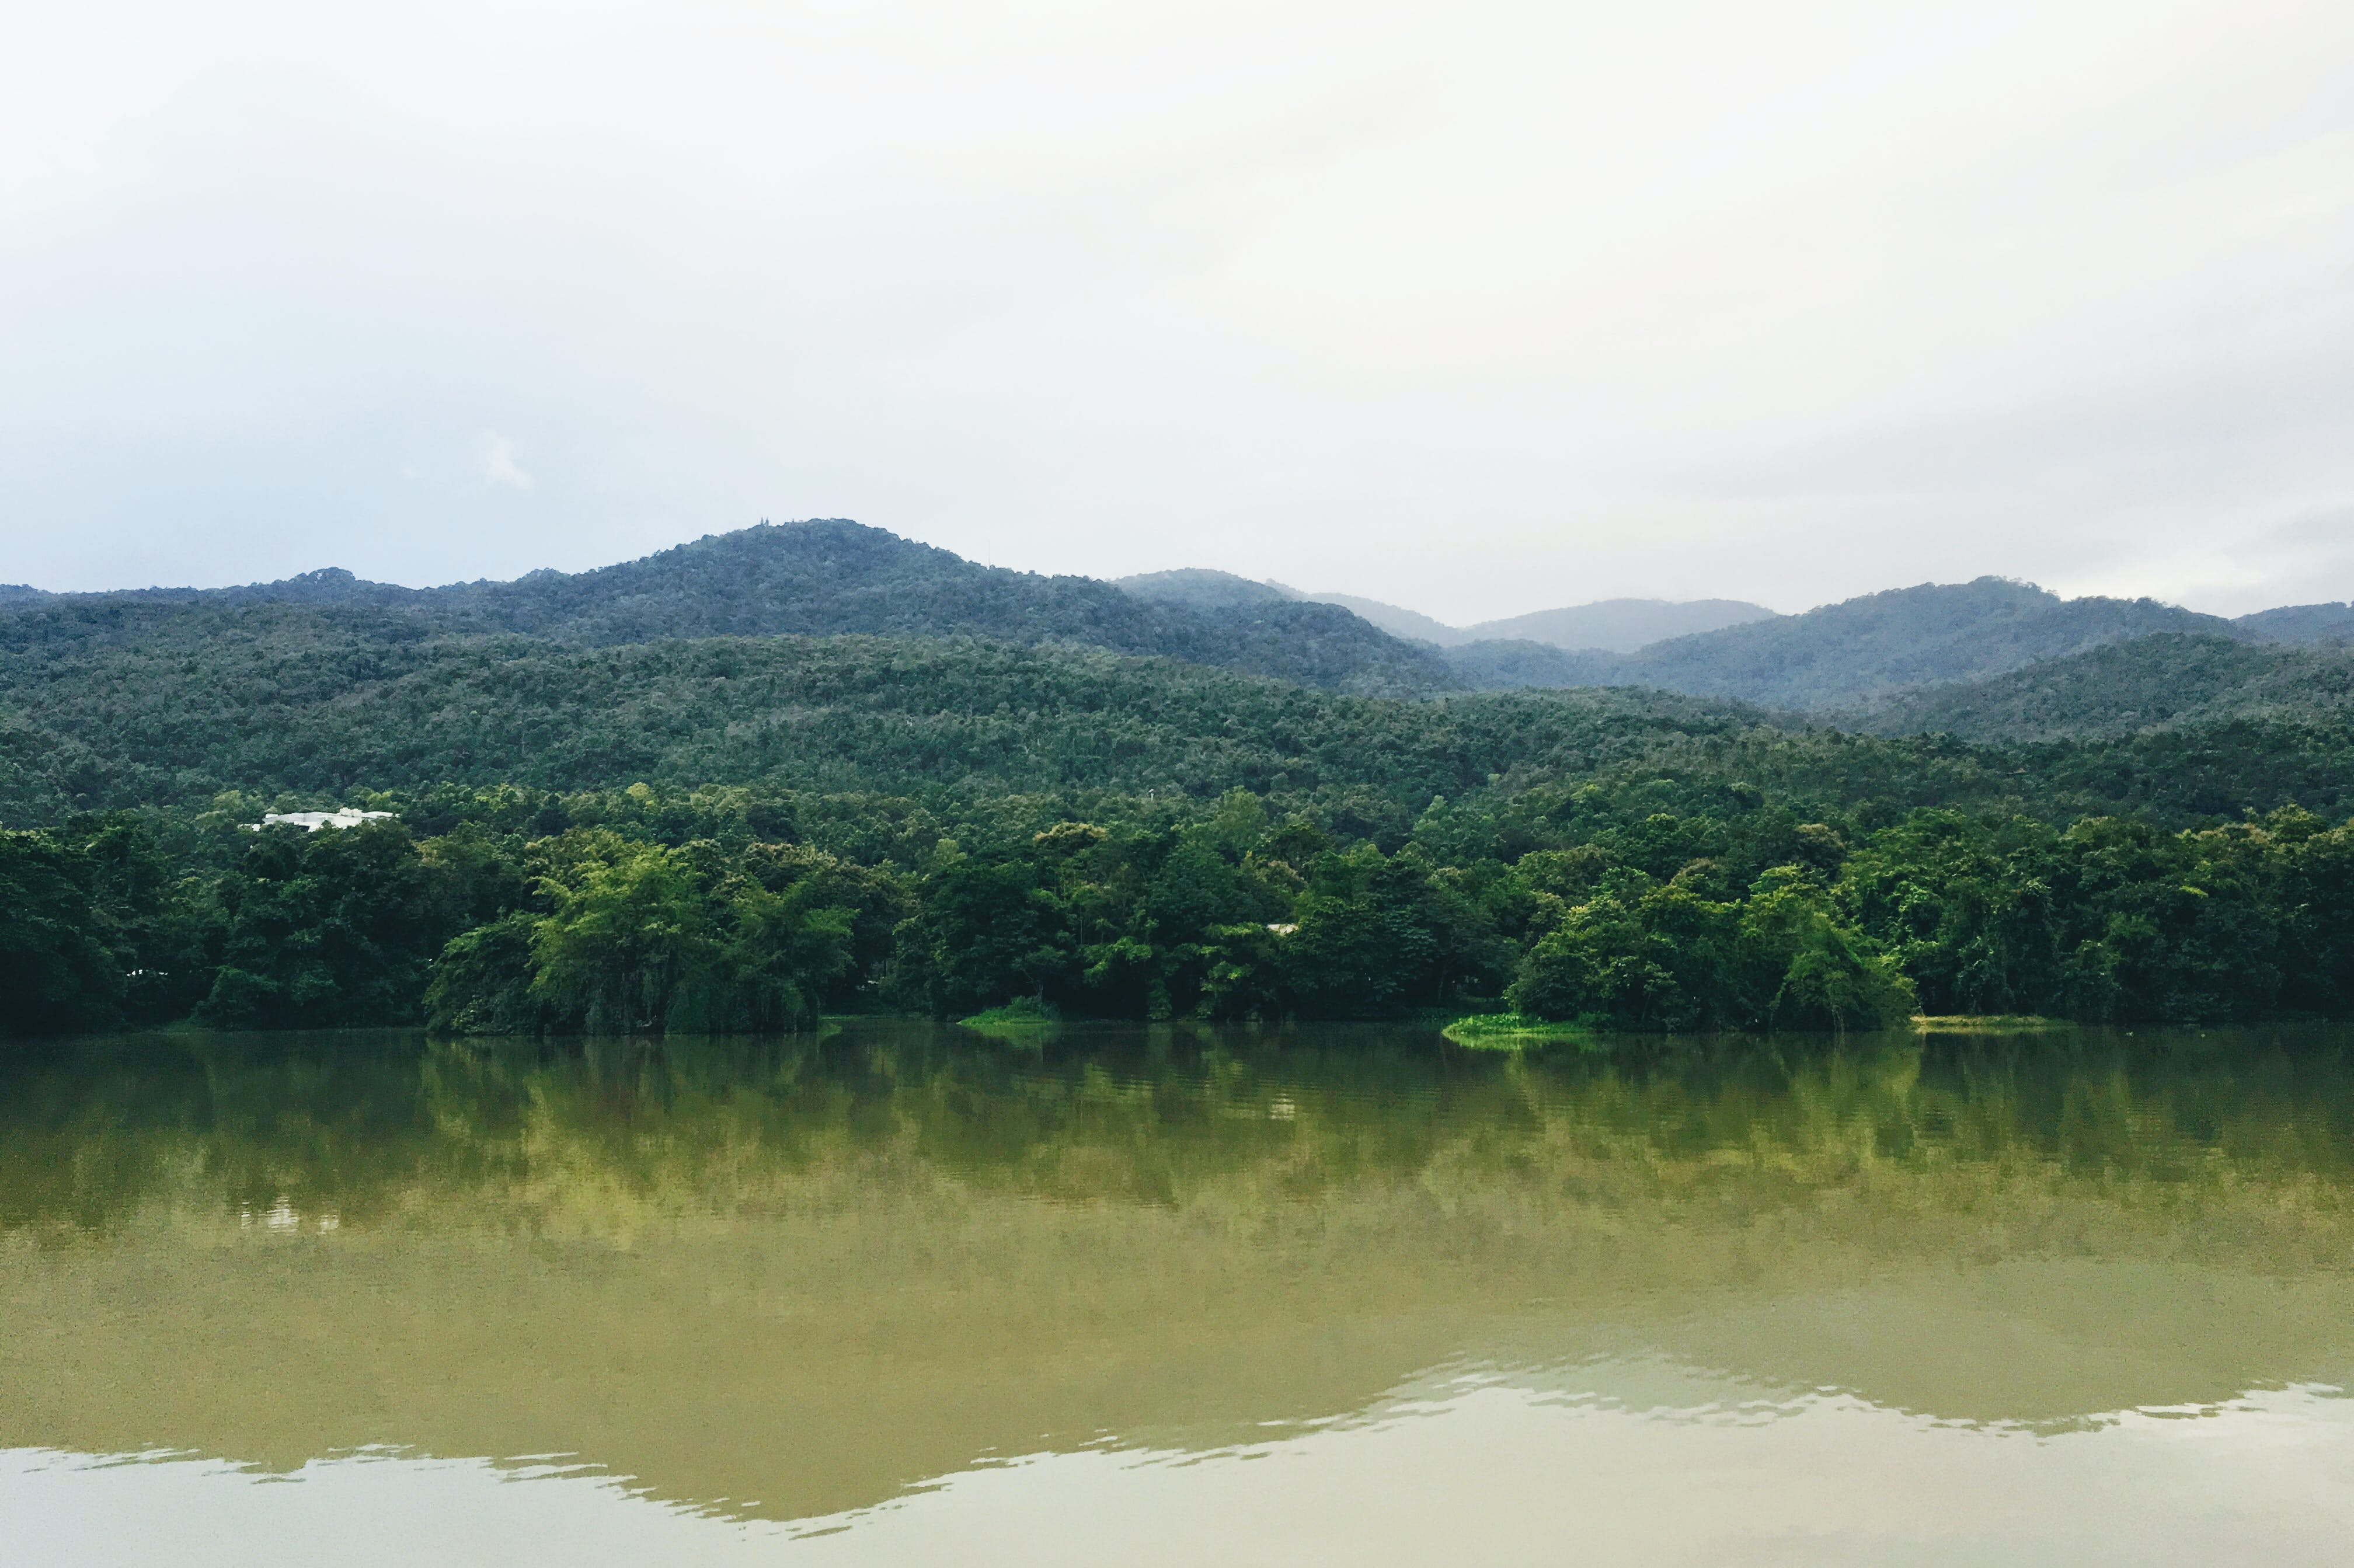 Mountain Range Near Body of Water